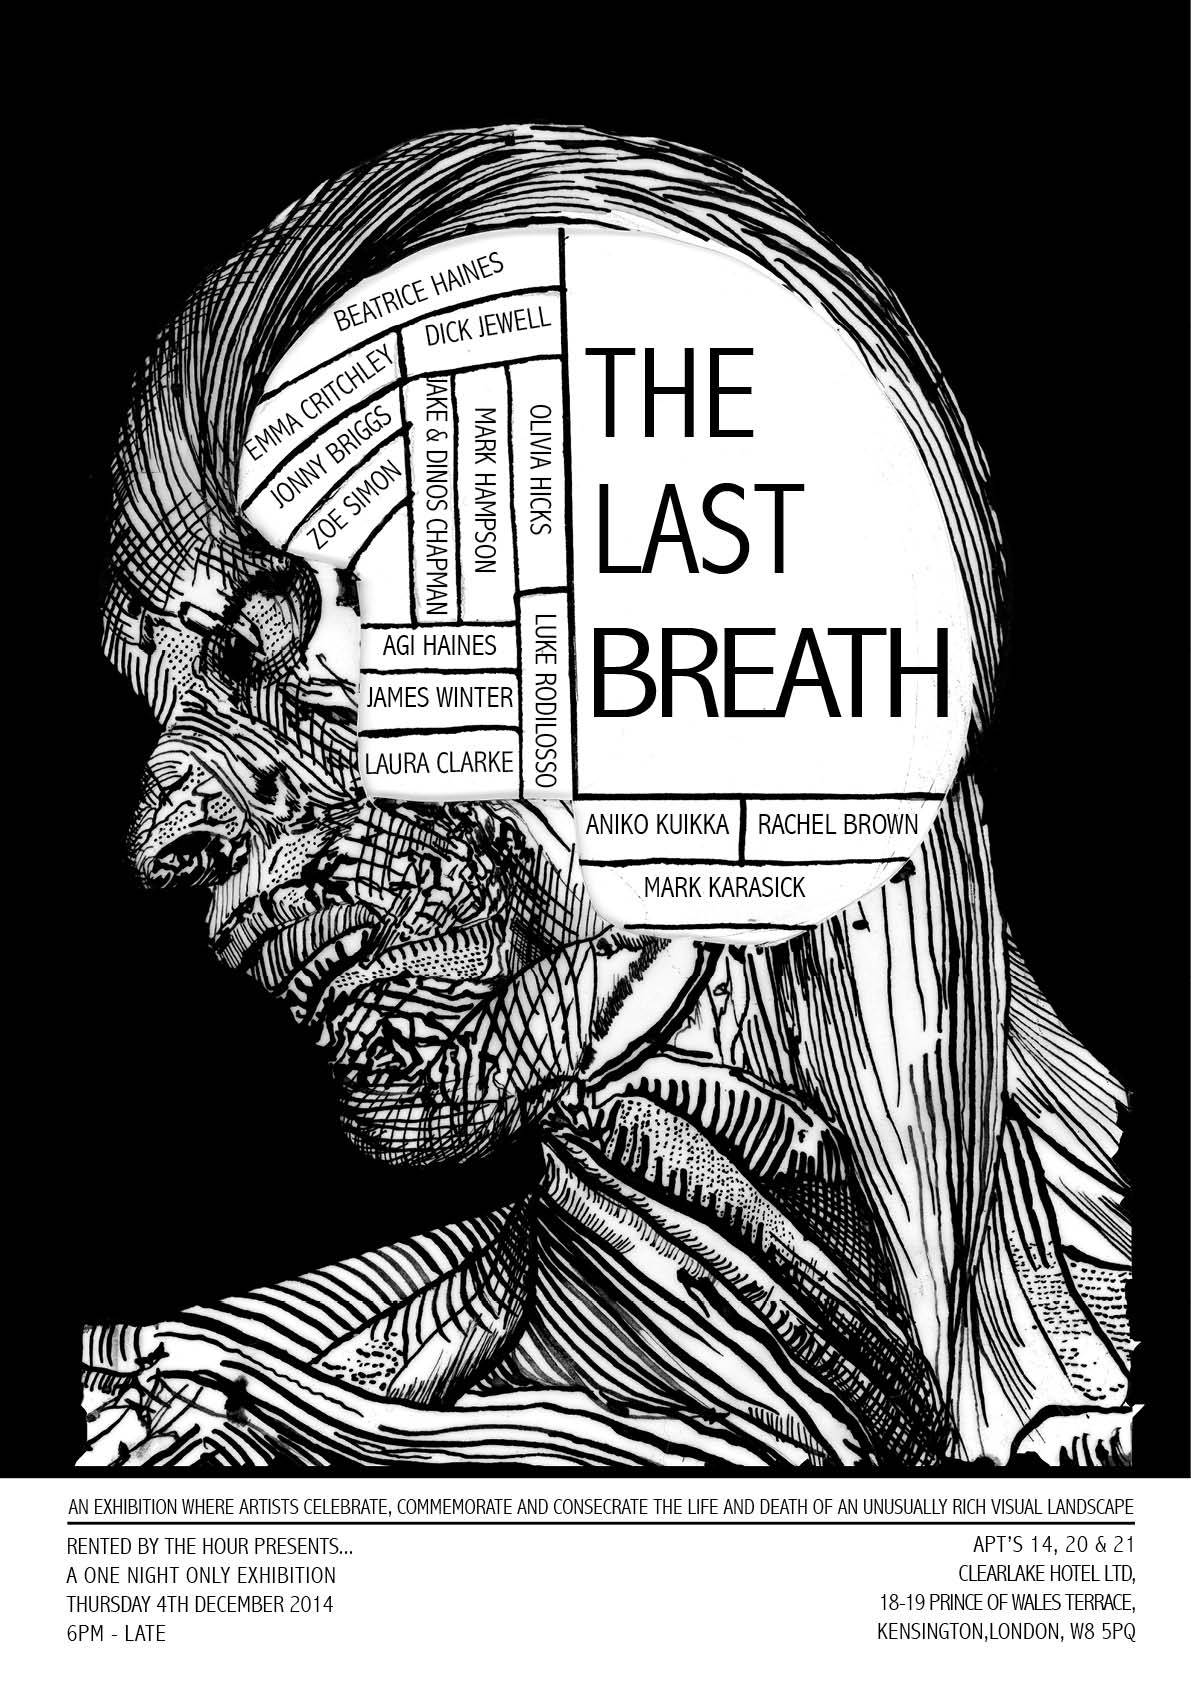 I am co-curating and exhibiting in a one day only exhibition called 'The Last Breath', on Thursday 4th December. Artists include Beatrice Haines, Olivia Hicks, Dick Jewell, Jonny Briggs, Jake and Dinos Chapman and many more!   For more details please email me directly or visit: https://www.kickstarter.com/projects/1724801804/last-breath